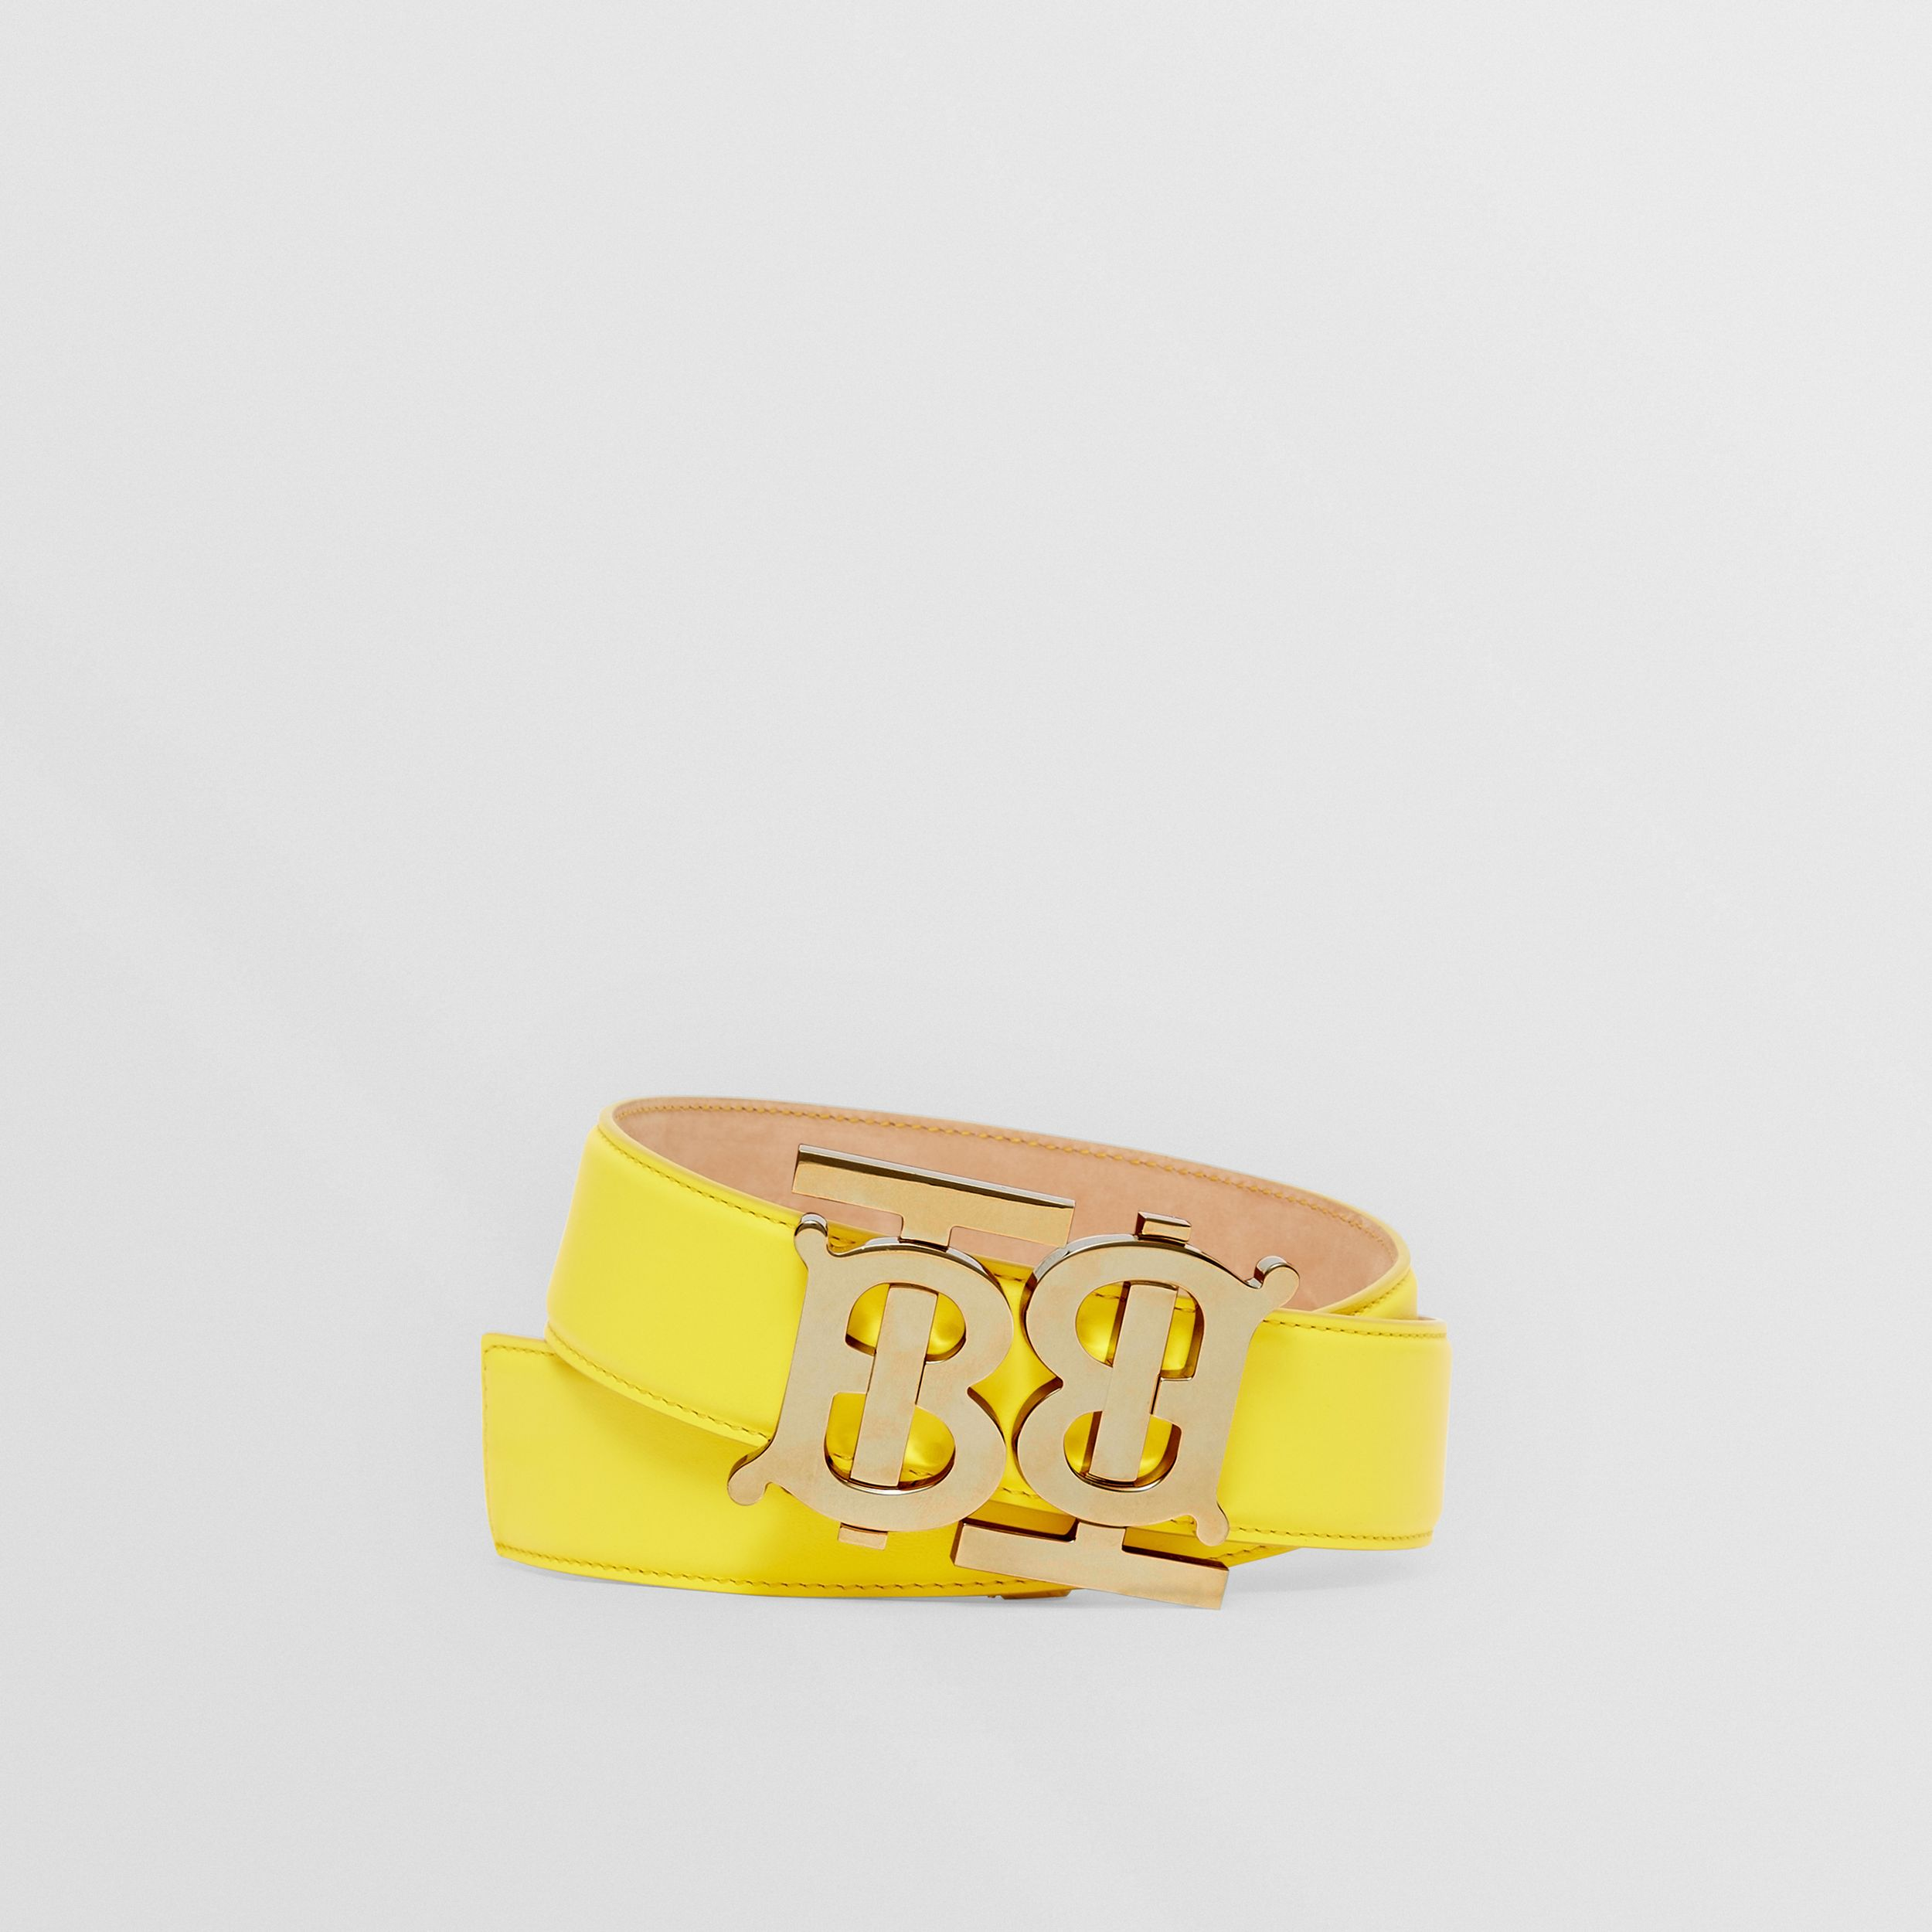 Double Monogram Motif Leather Belt in Marigold Yellow - Women | Burberry - 1